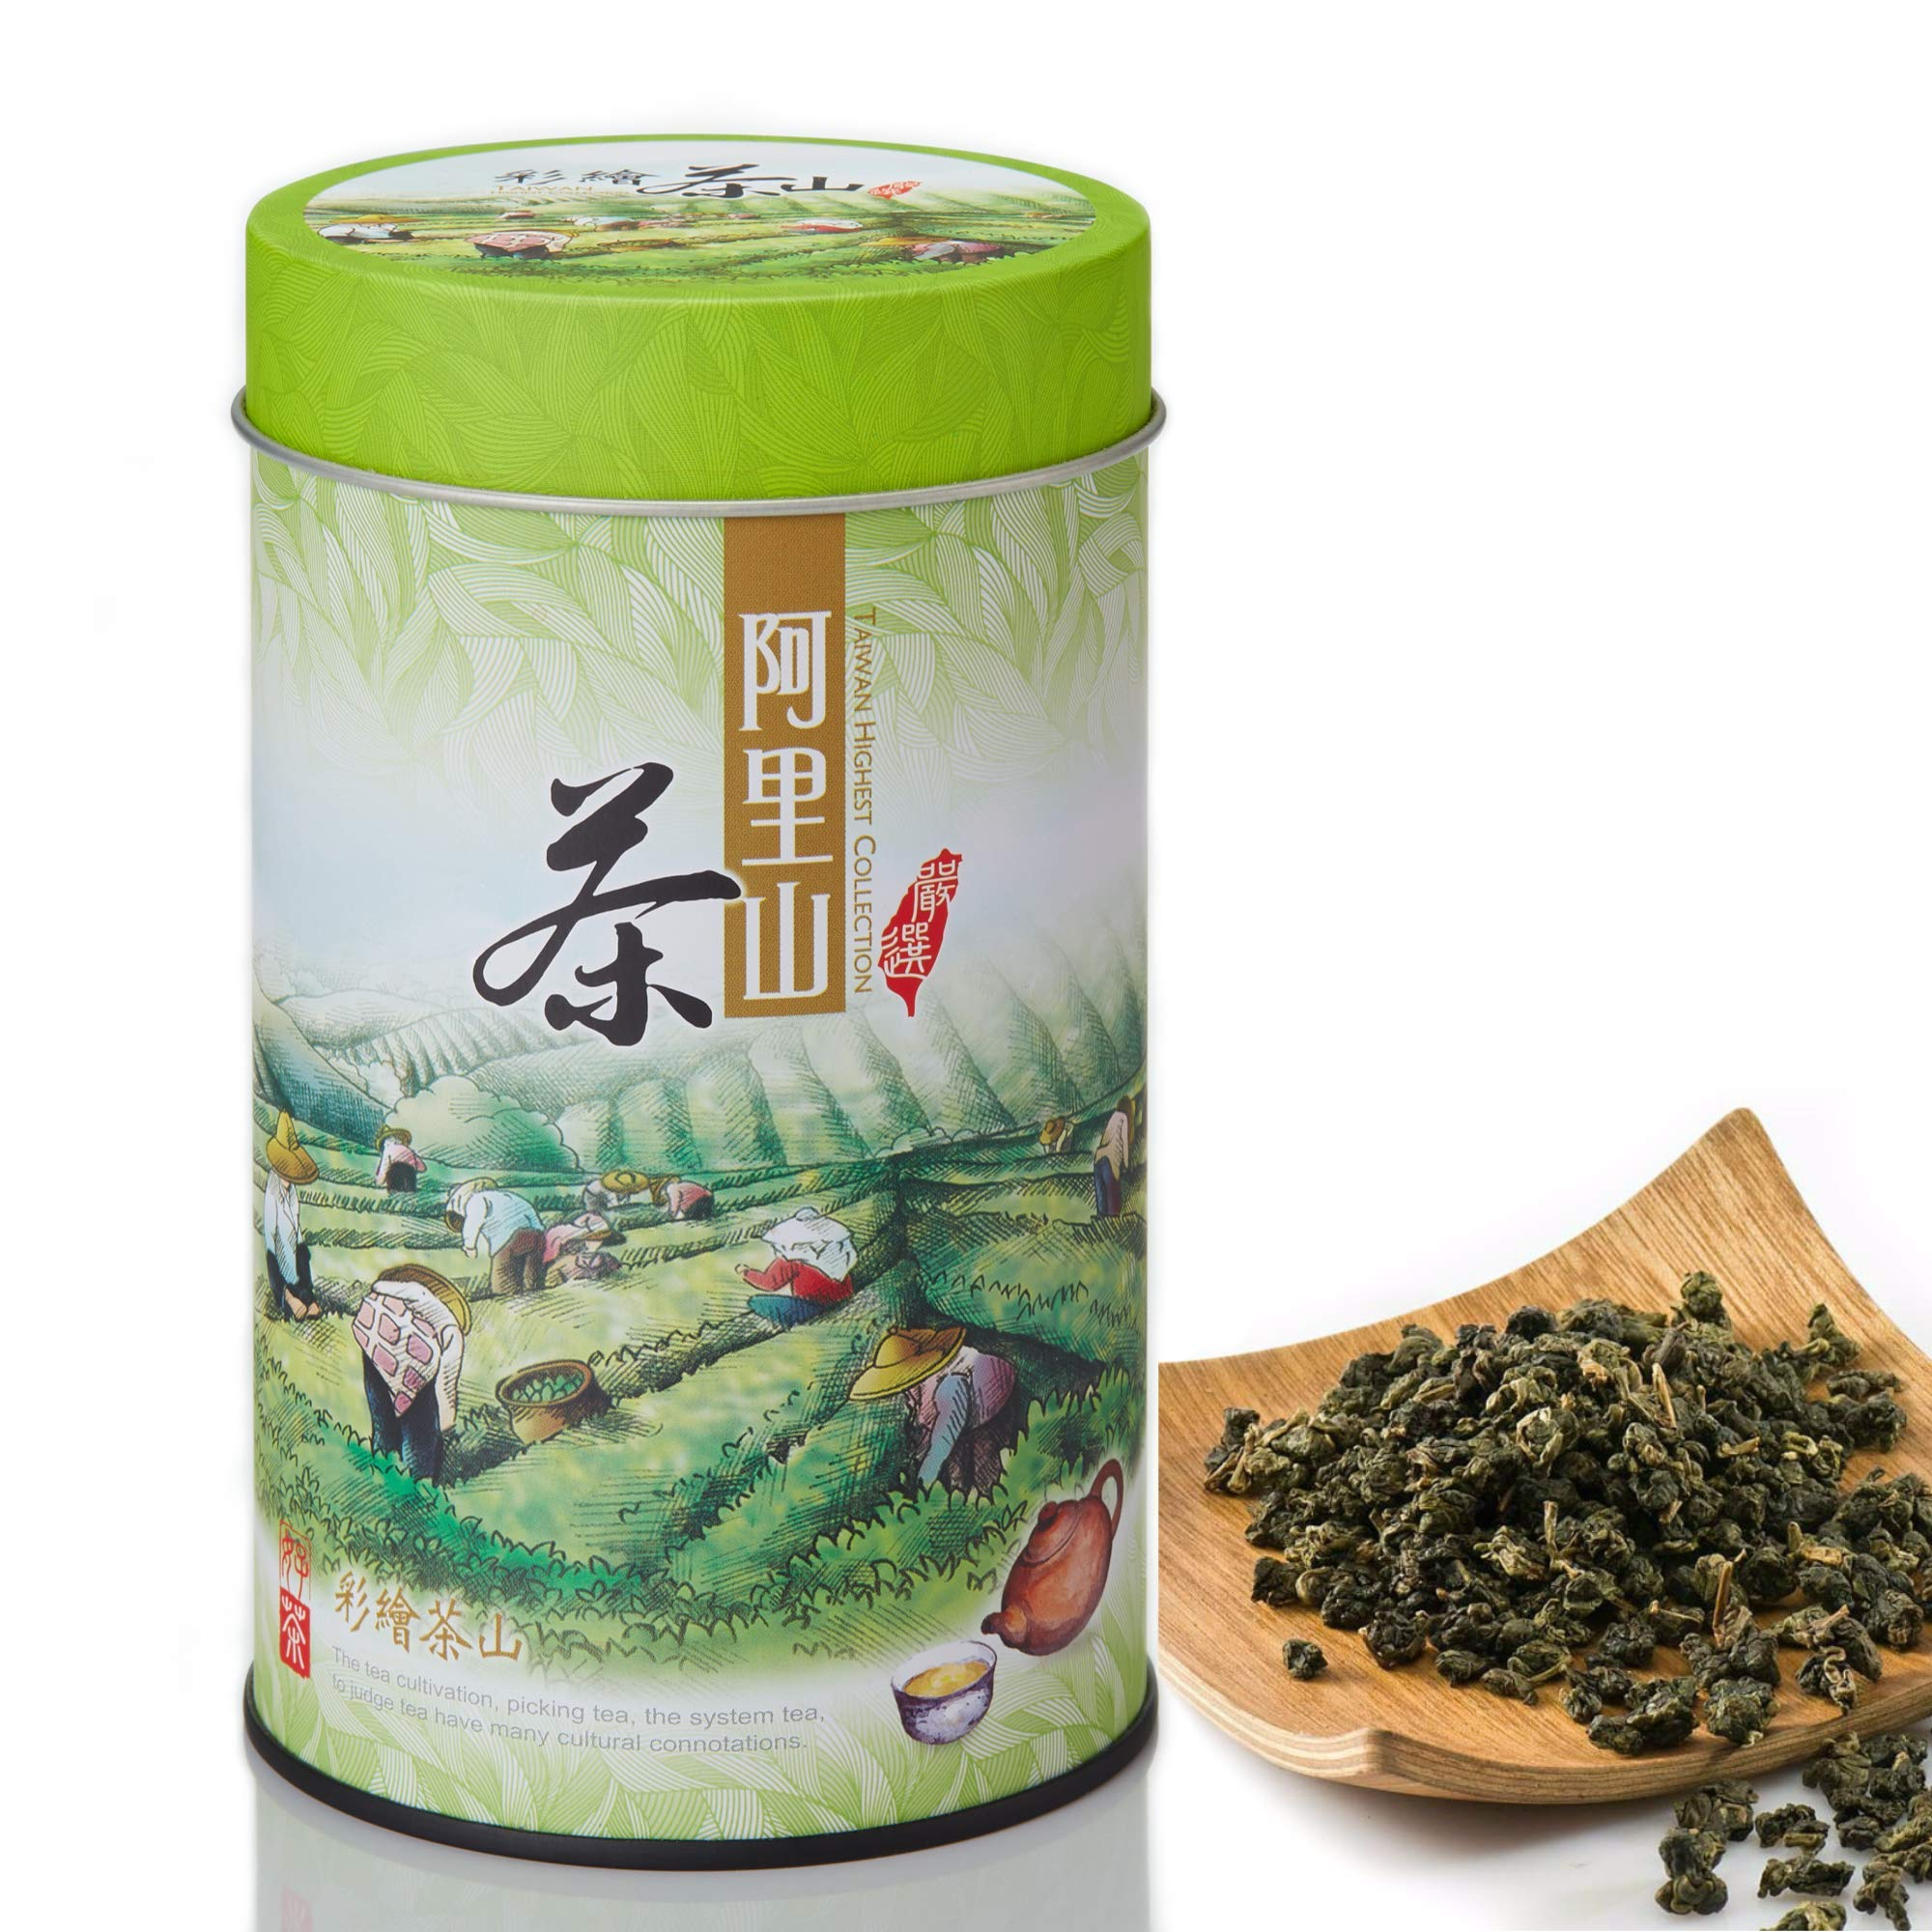 Tepacito Oolong Tea Loose Leaf, Authentic Taiwan Alishan High Mountain Tea Healthy Weight Loss Detox Relaxing Naturally Grown Fresh Flavor Unique Aroma by Tepacito